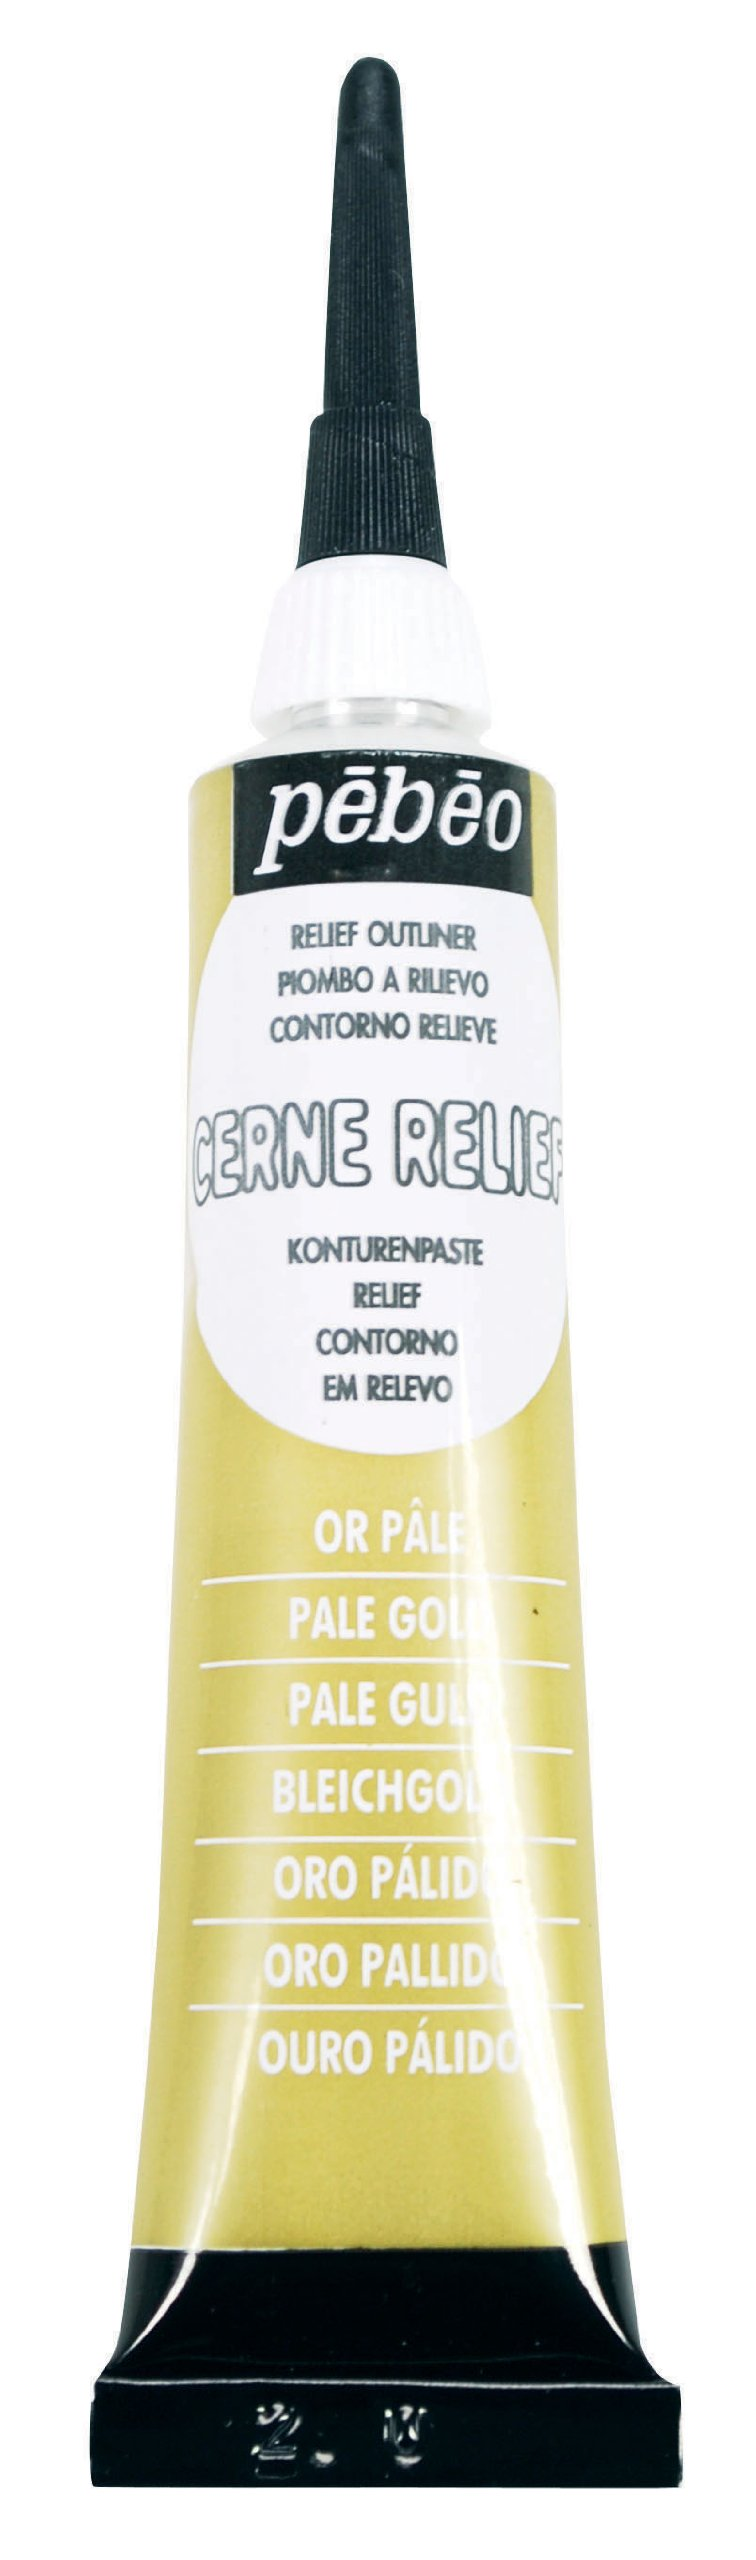 Pebeo Vitrail, Cerne Relief Dimensional Paint, 20 ml Tube with Nozzle - Pale Gold